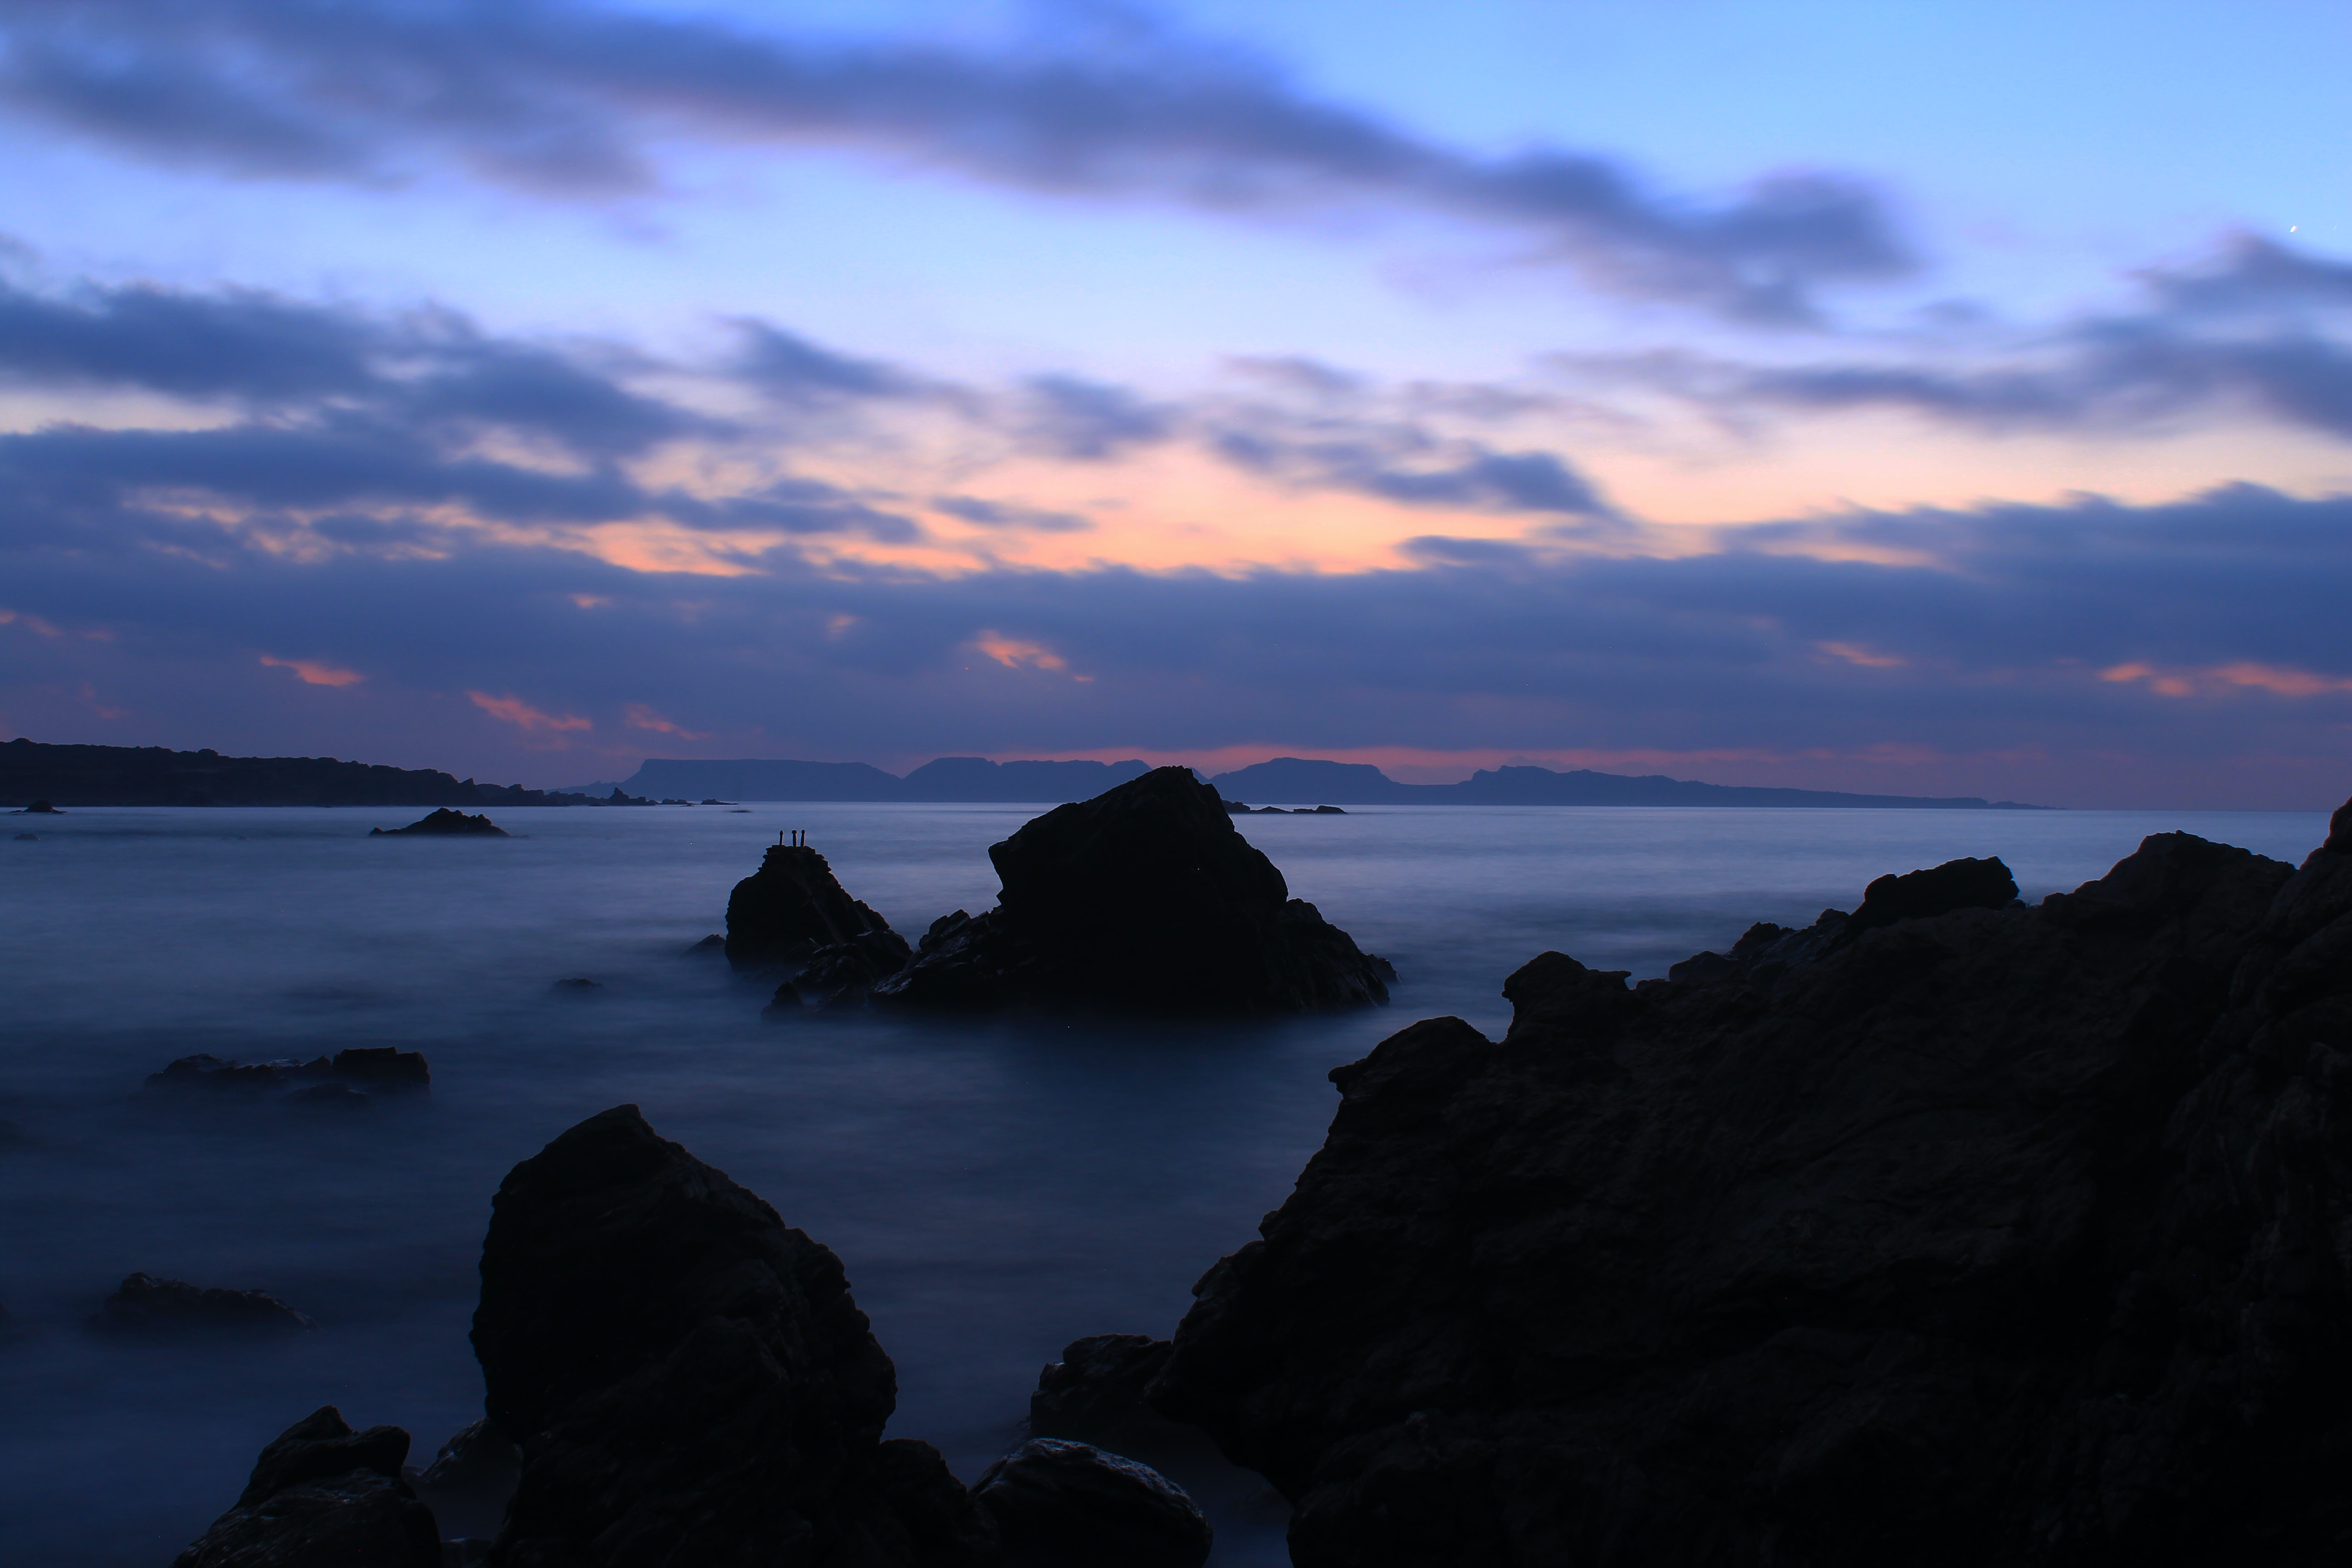 Cloudy sunset at Punta Choros with silhouettes of rocks in the ocean.